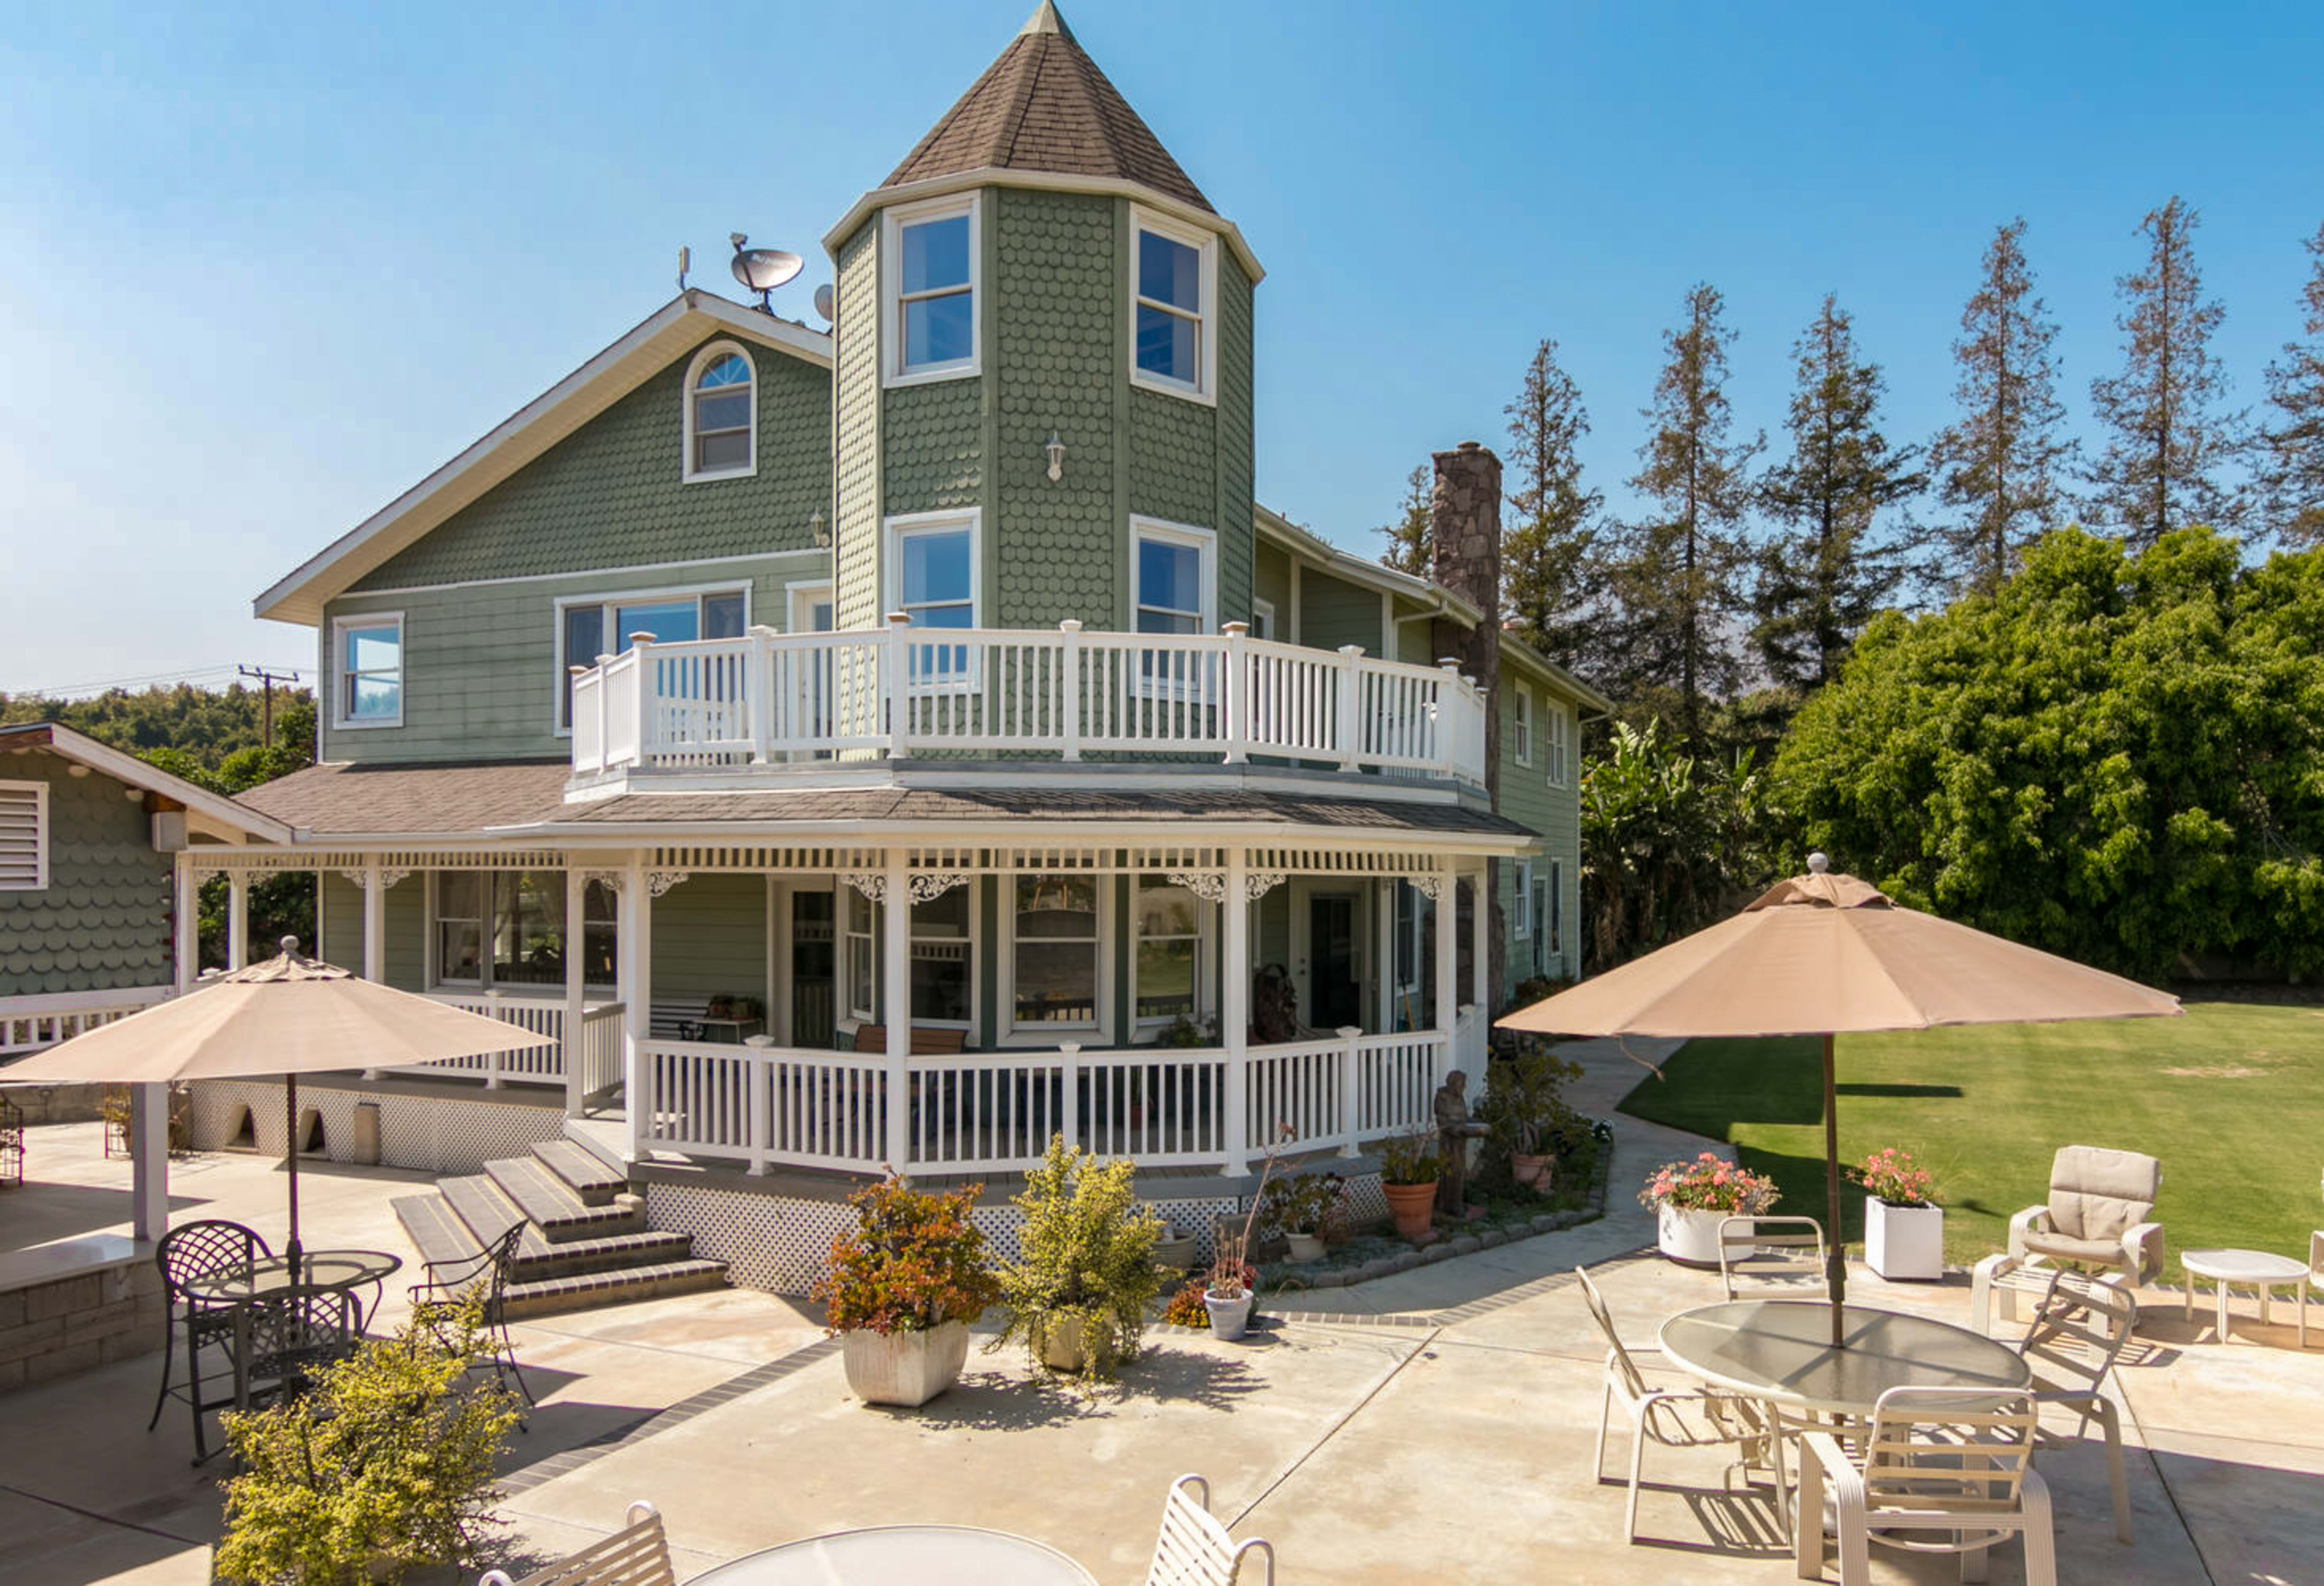 Fillmore CA Vacation Rental Victorian home with